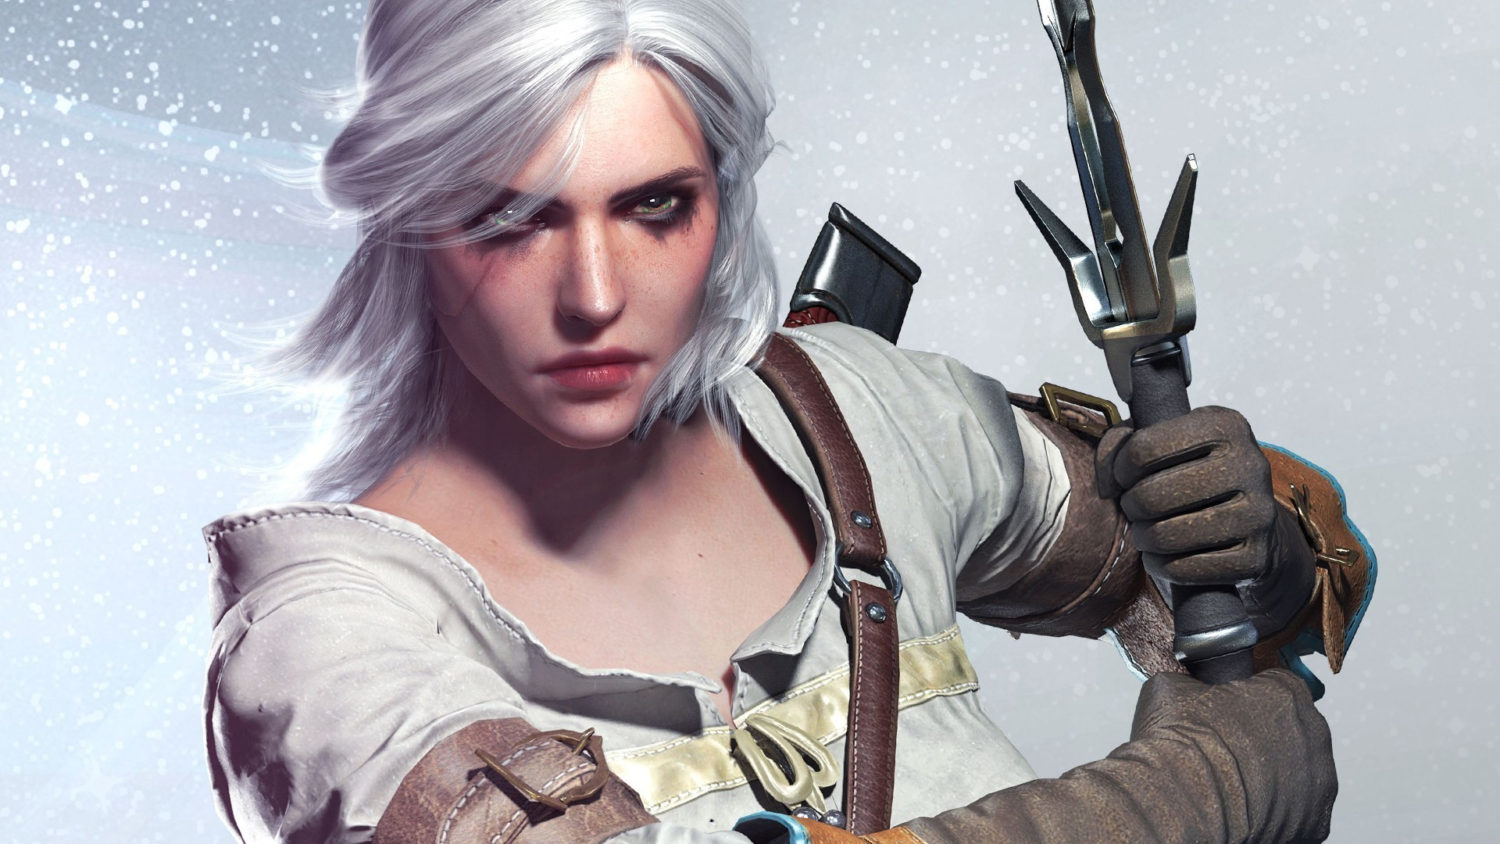 The Witcher 4: Ciri sarà la protagonista del gioco?